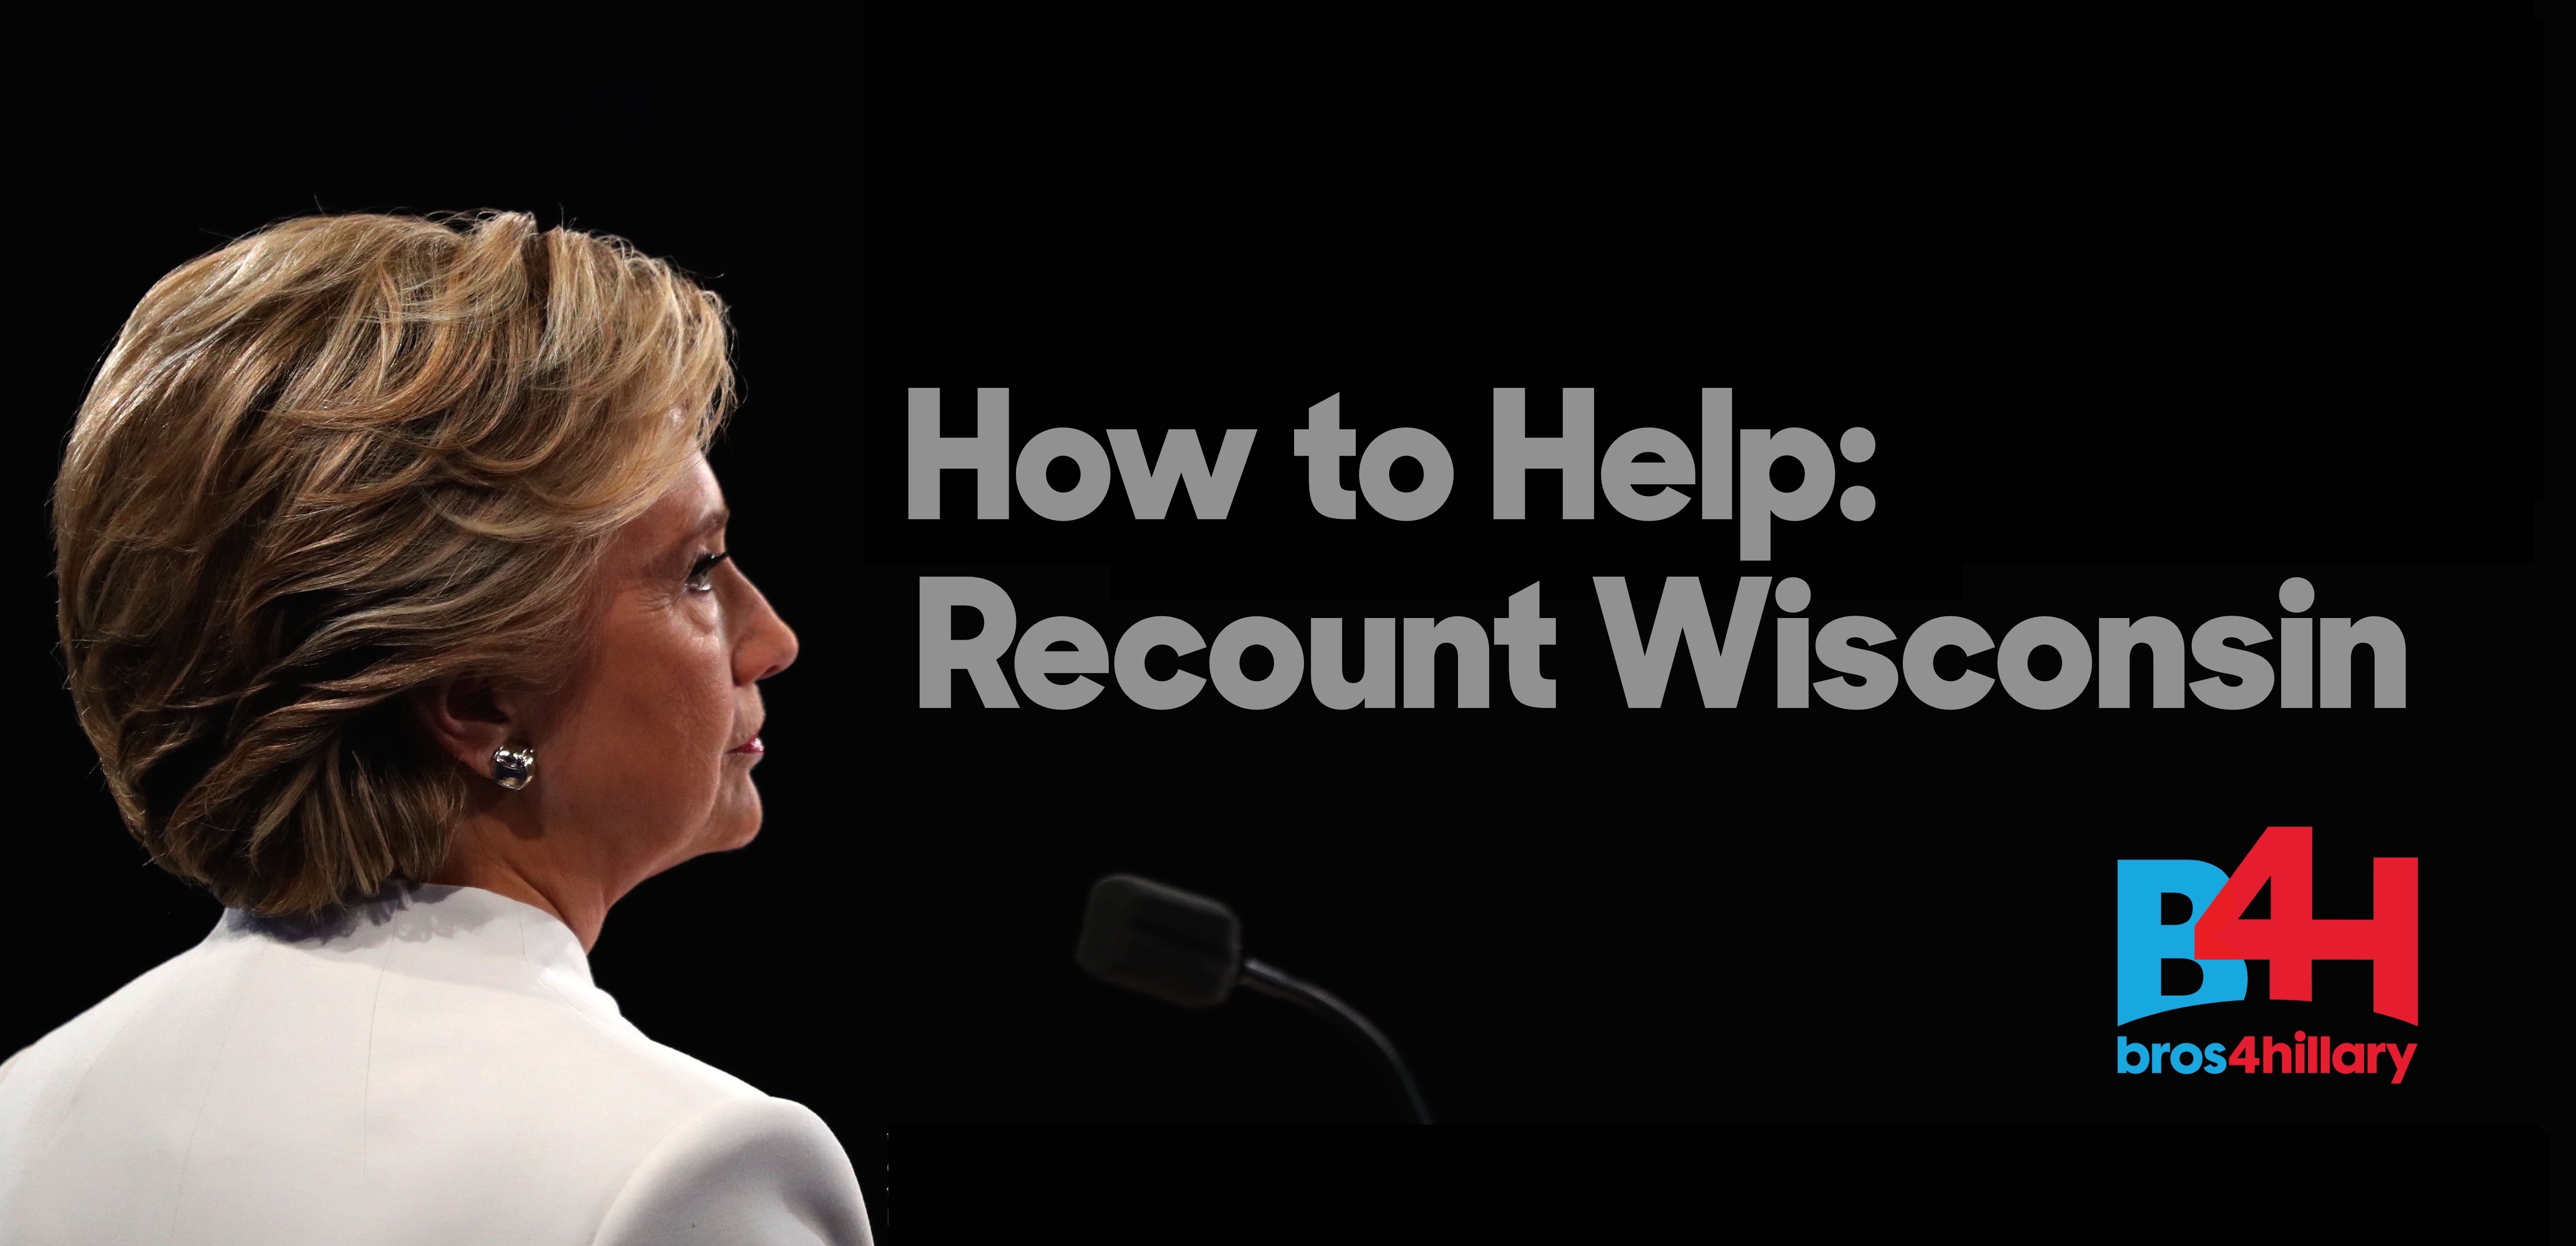 How to Help Wisconsin: Call WI County Clerks. Demand a HAND Recount. Volunteer With Hillary